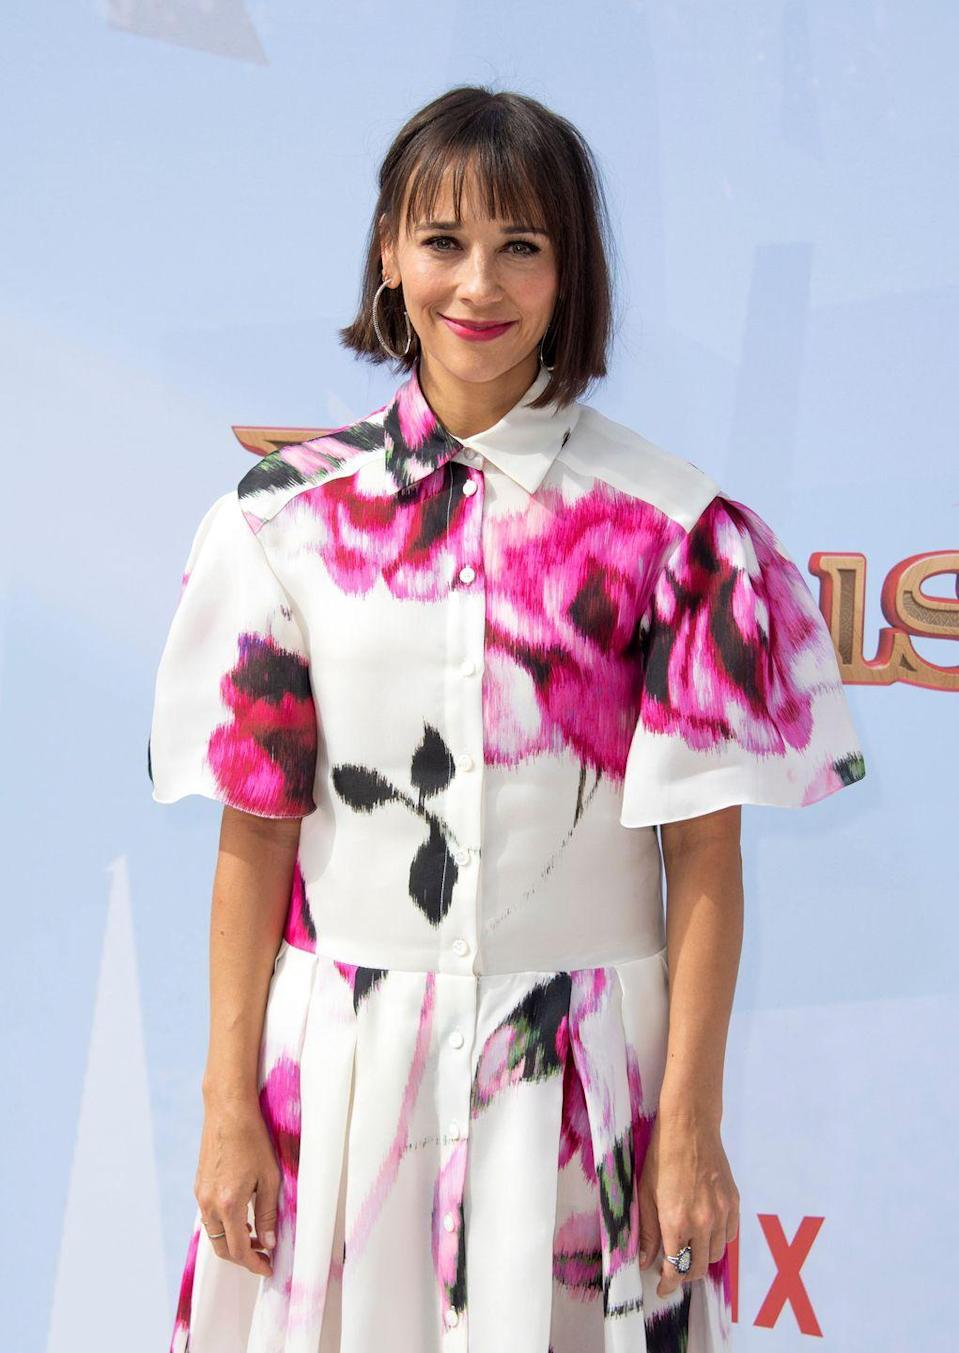 <p>The actress and producer graduated from Harvard University in 1997, where she belonged to various clubs on campus, including the Hasty Pudding Theatricals. </p>